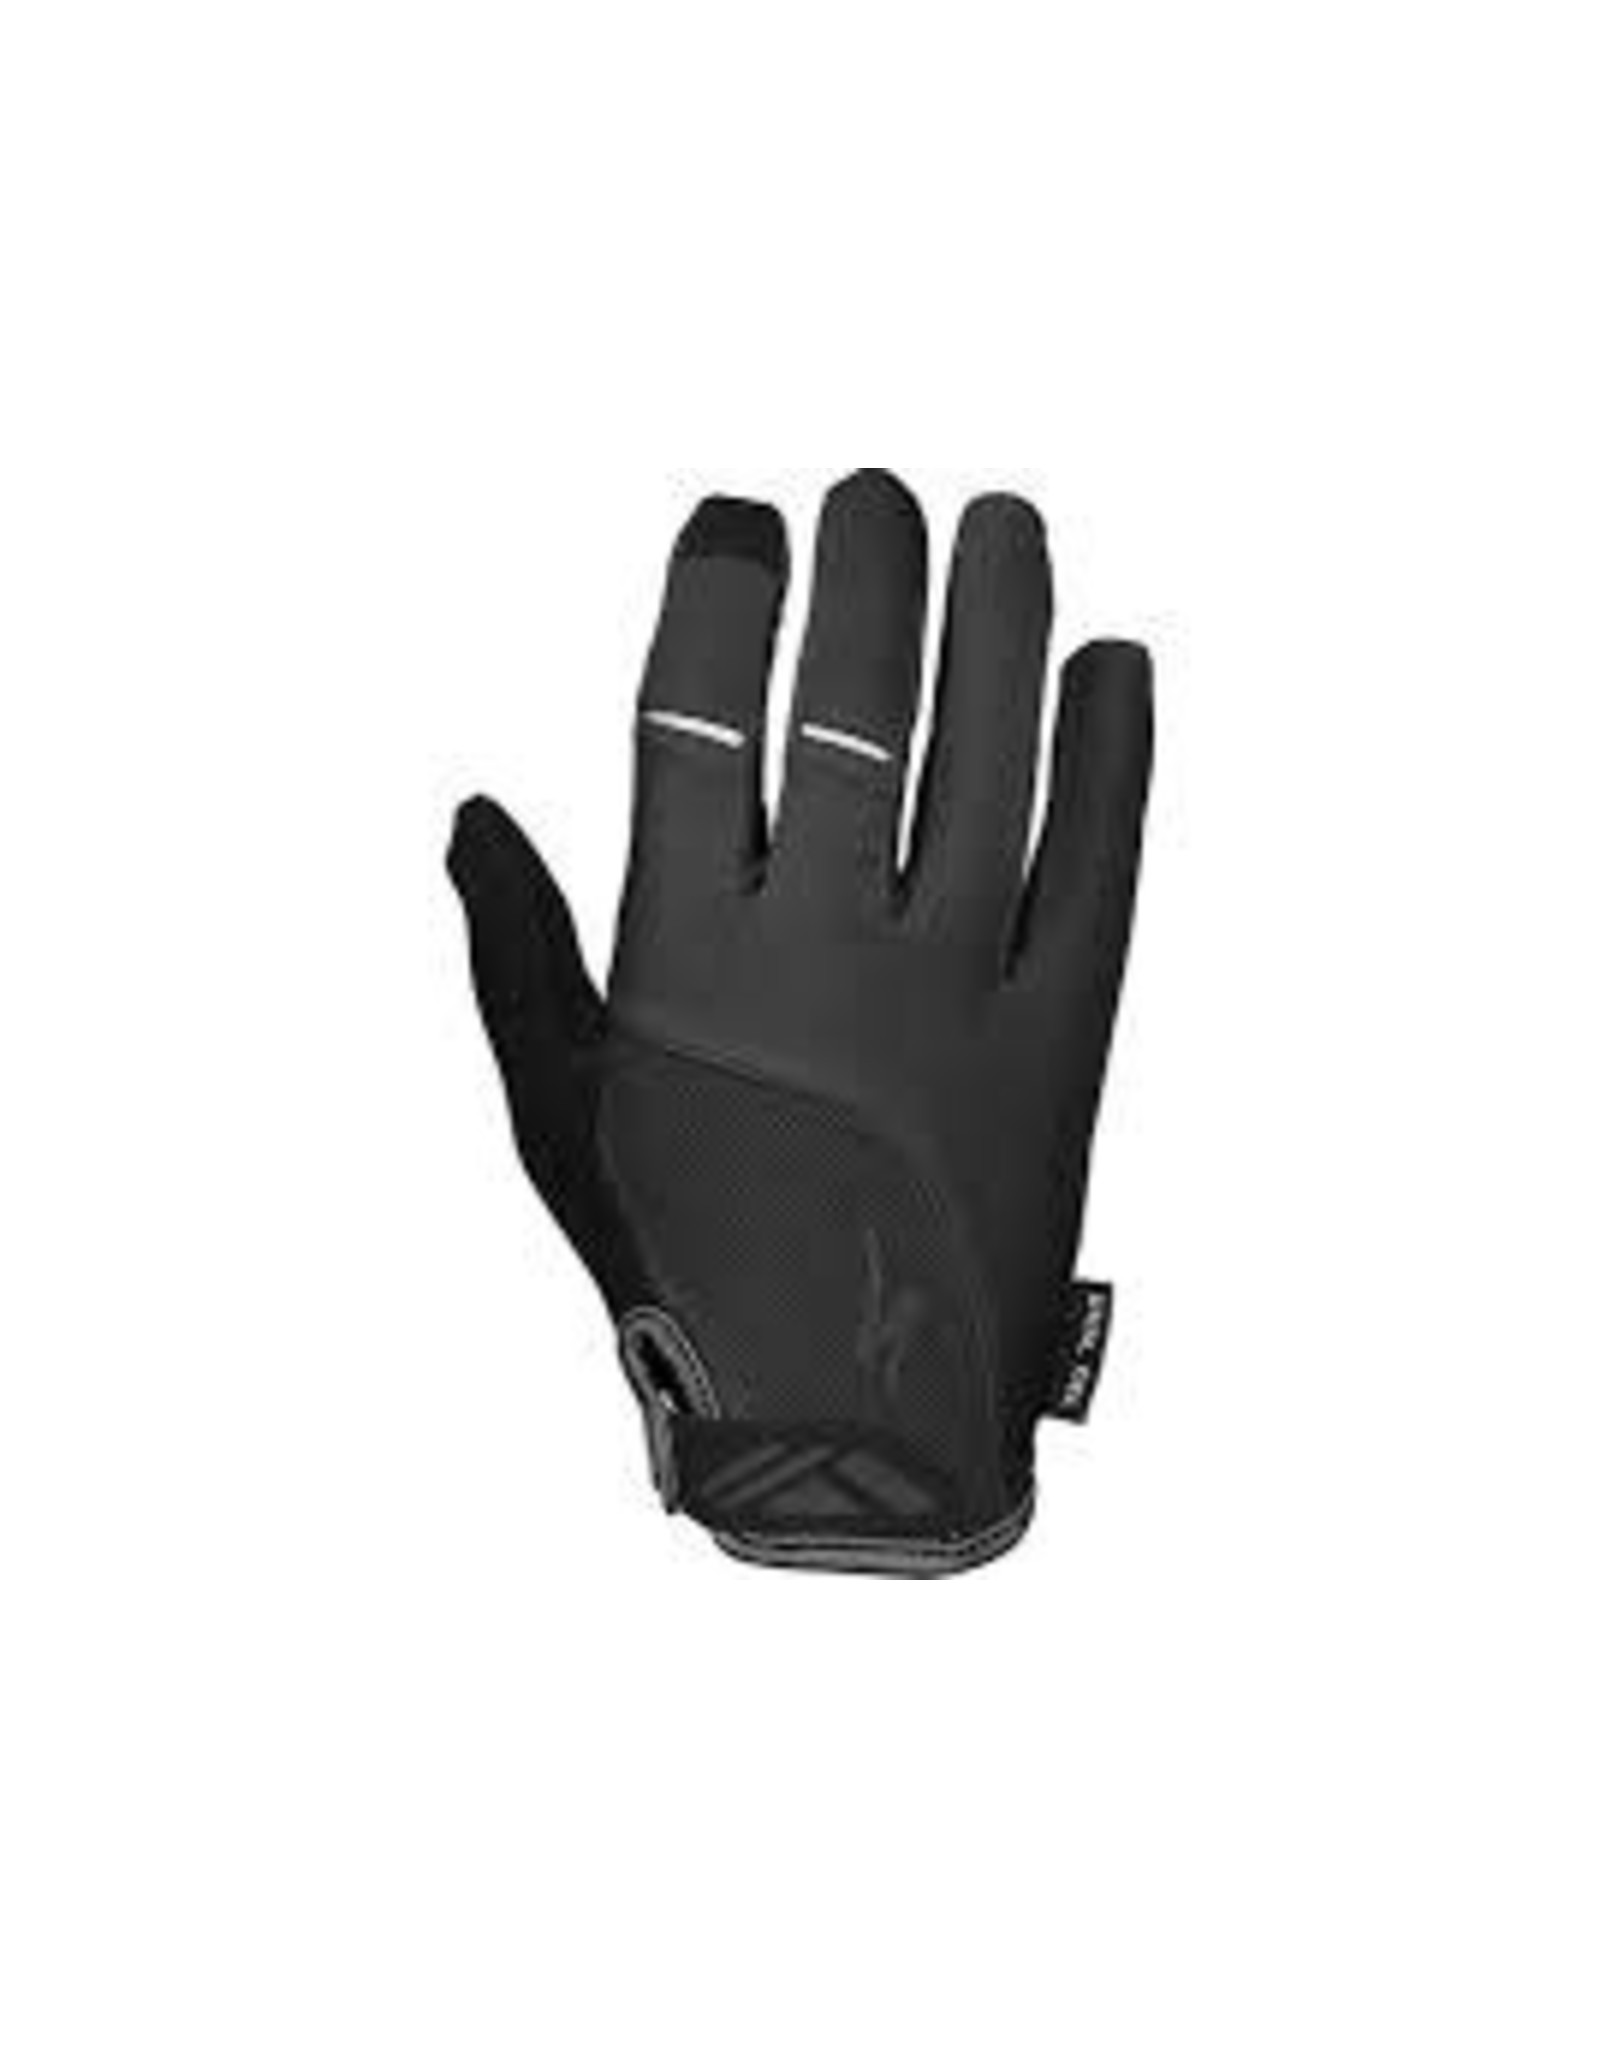 Specialized Glove Spec Gel LF WMN Blk Medium